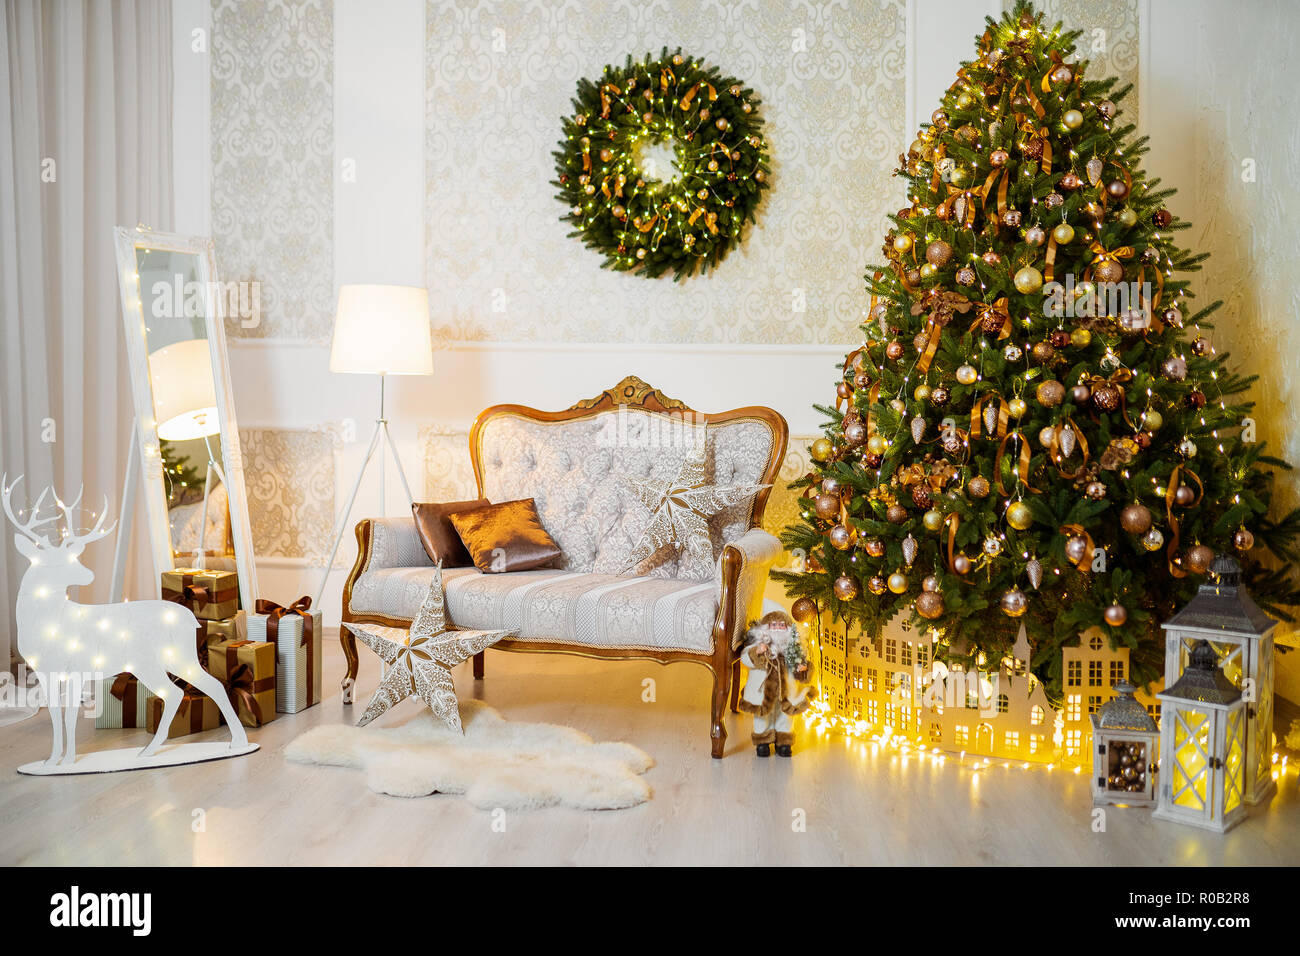 Christmas Decoration Indoors.White And Gold Lovely Christmas Decorations Horizontal